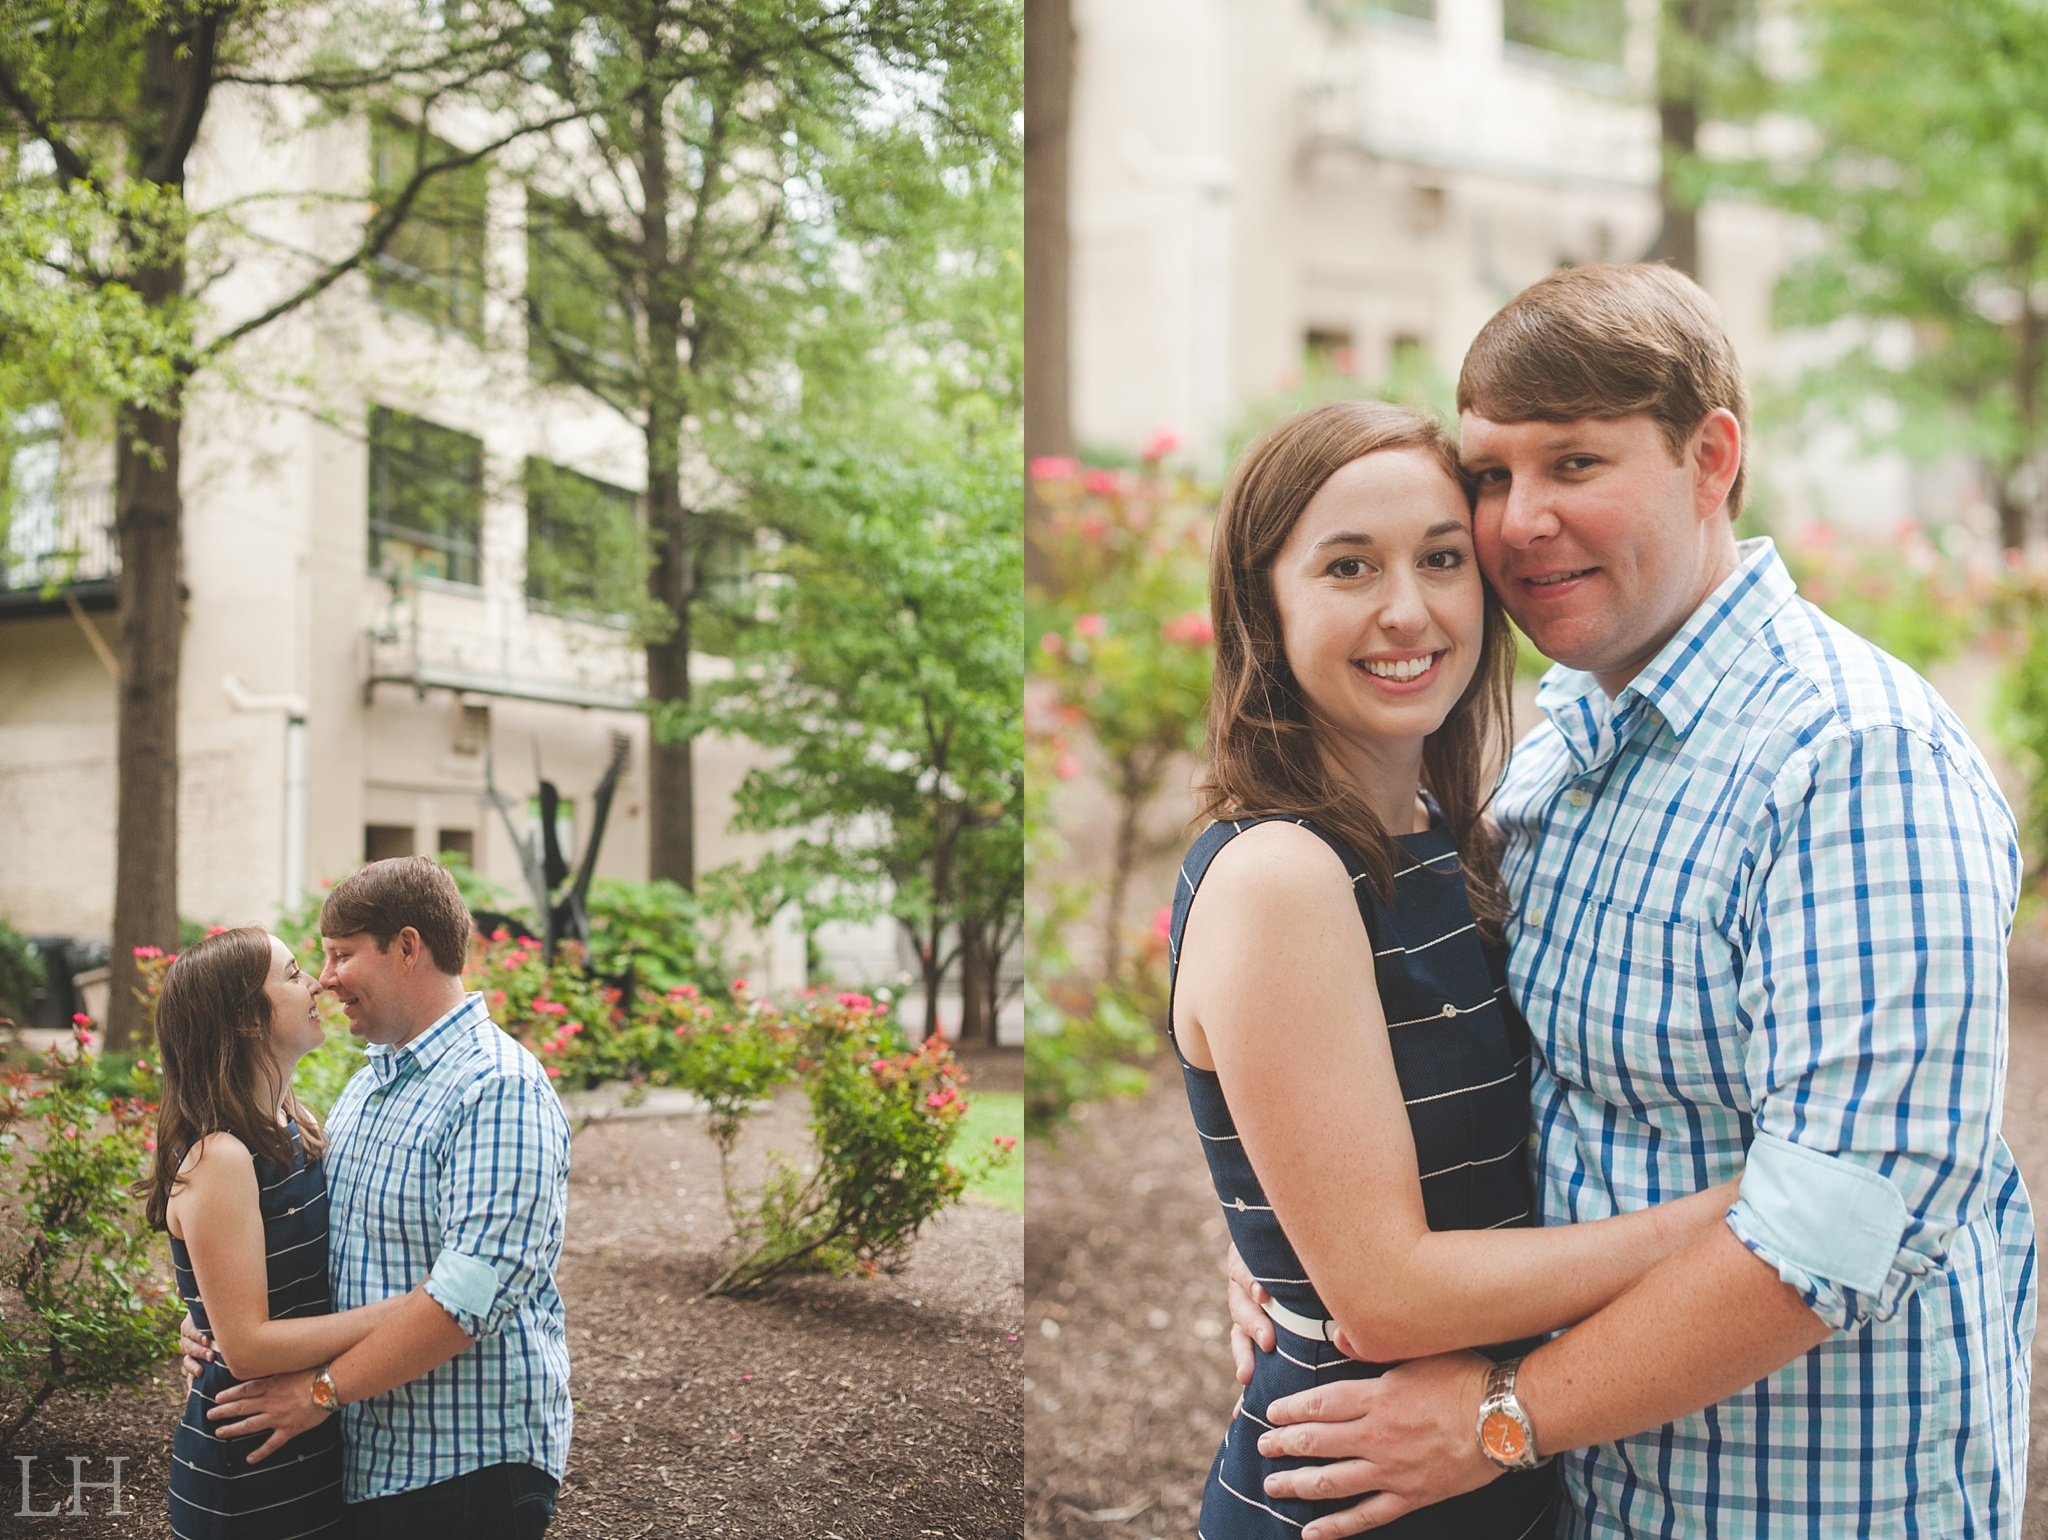 DowntownKnoxvilleEngagementSession101.jpg